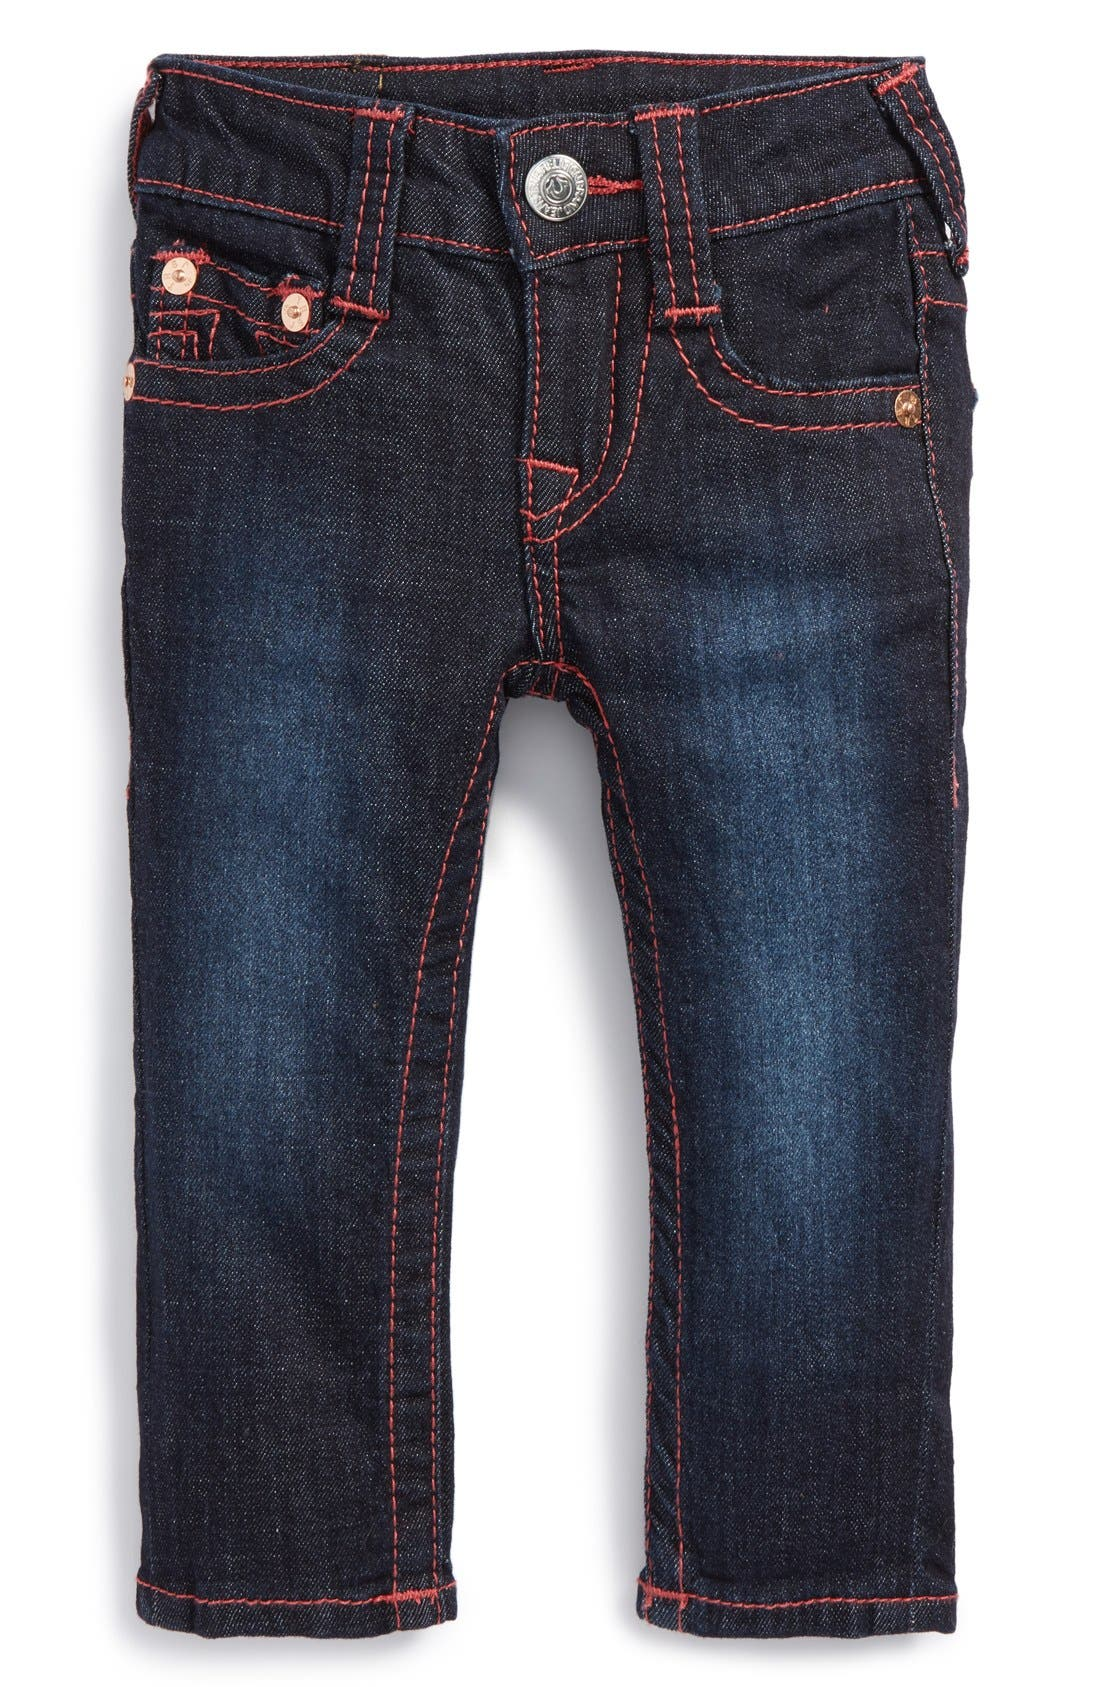 TRUE RELIGION BRAND JEANS,                             'Stella' Skinny Jeans,                             Main thumbnail 1, color,                             416